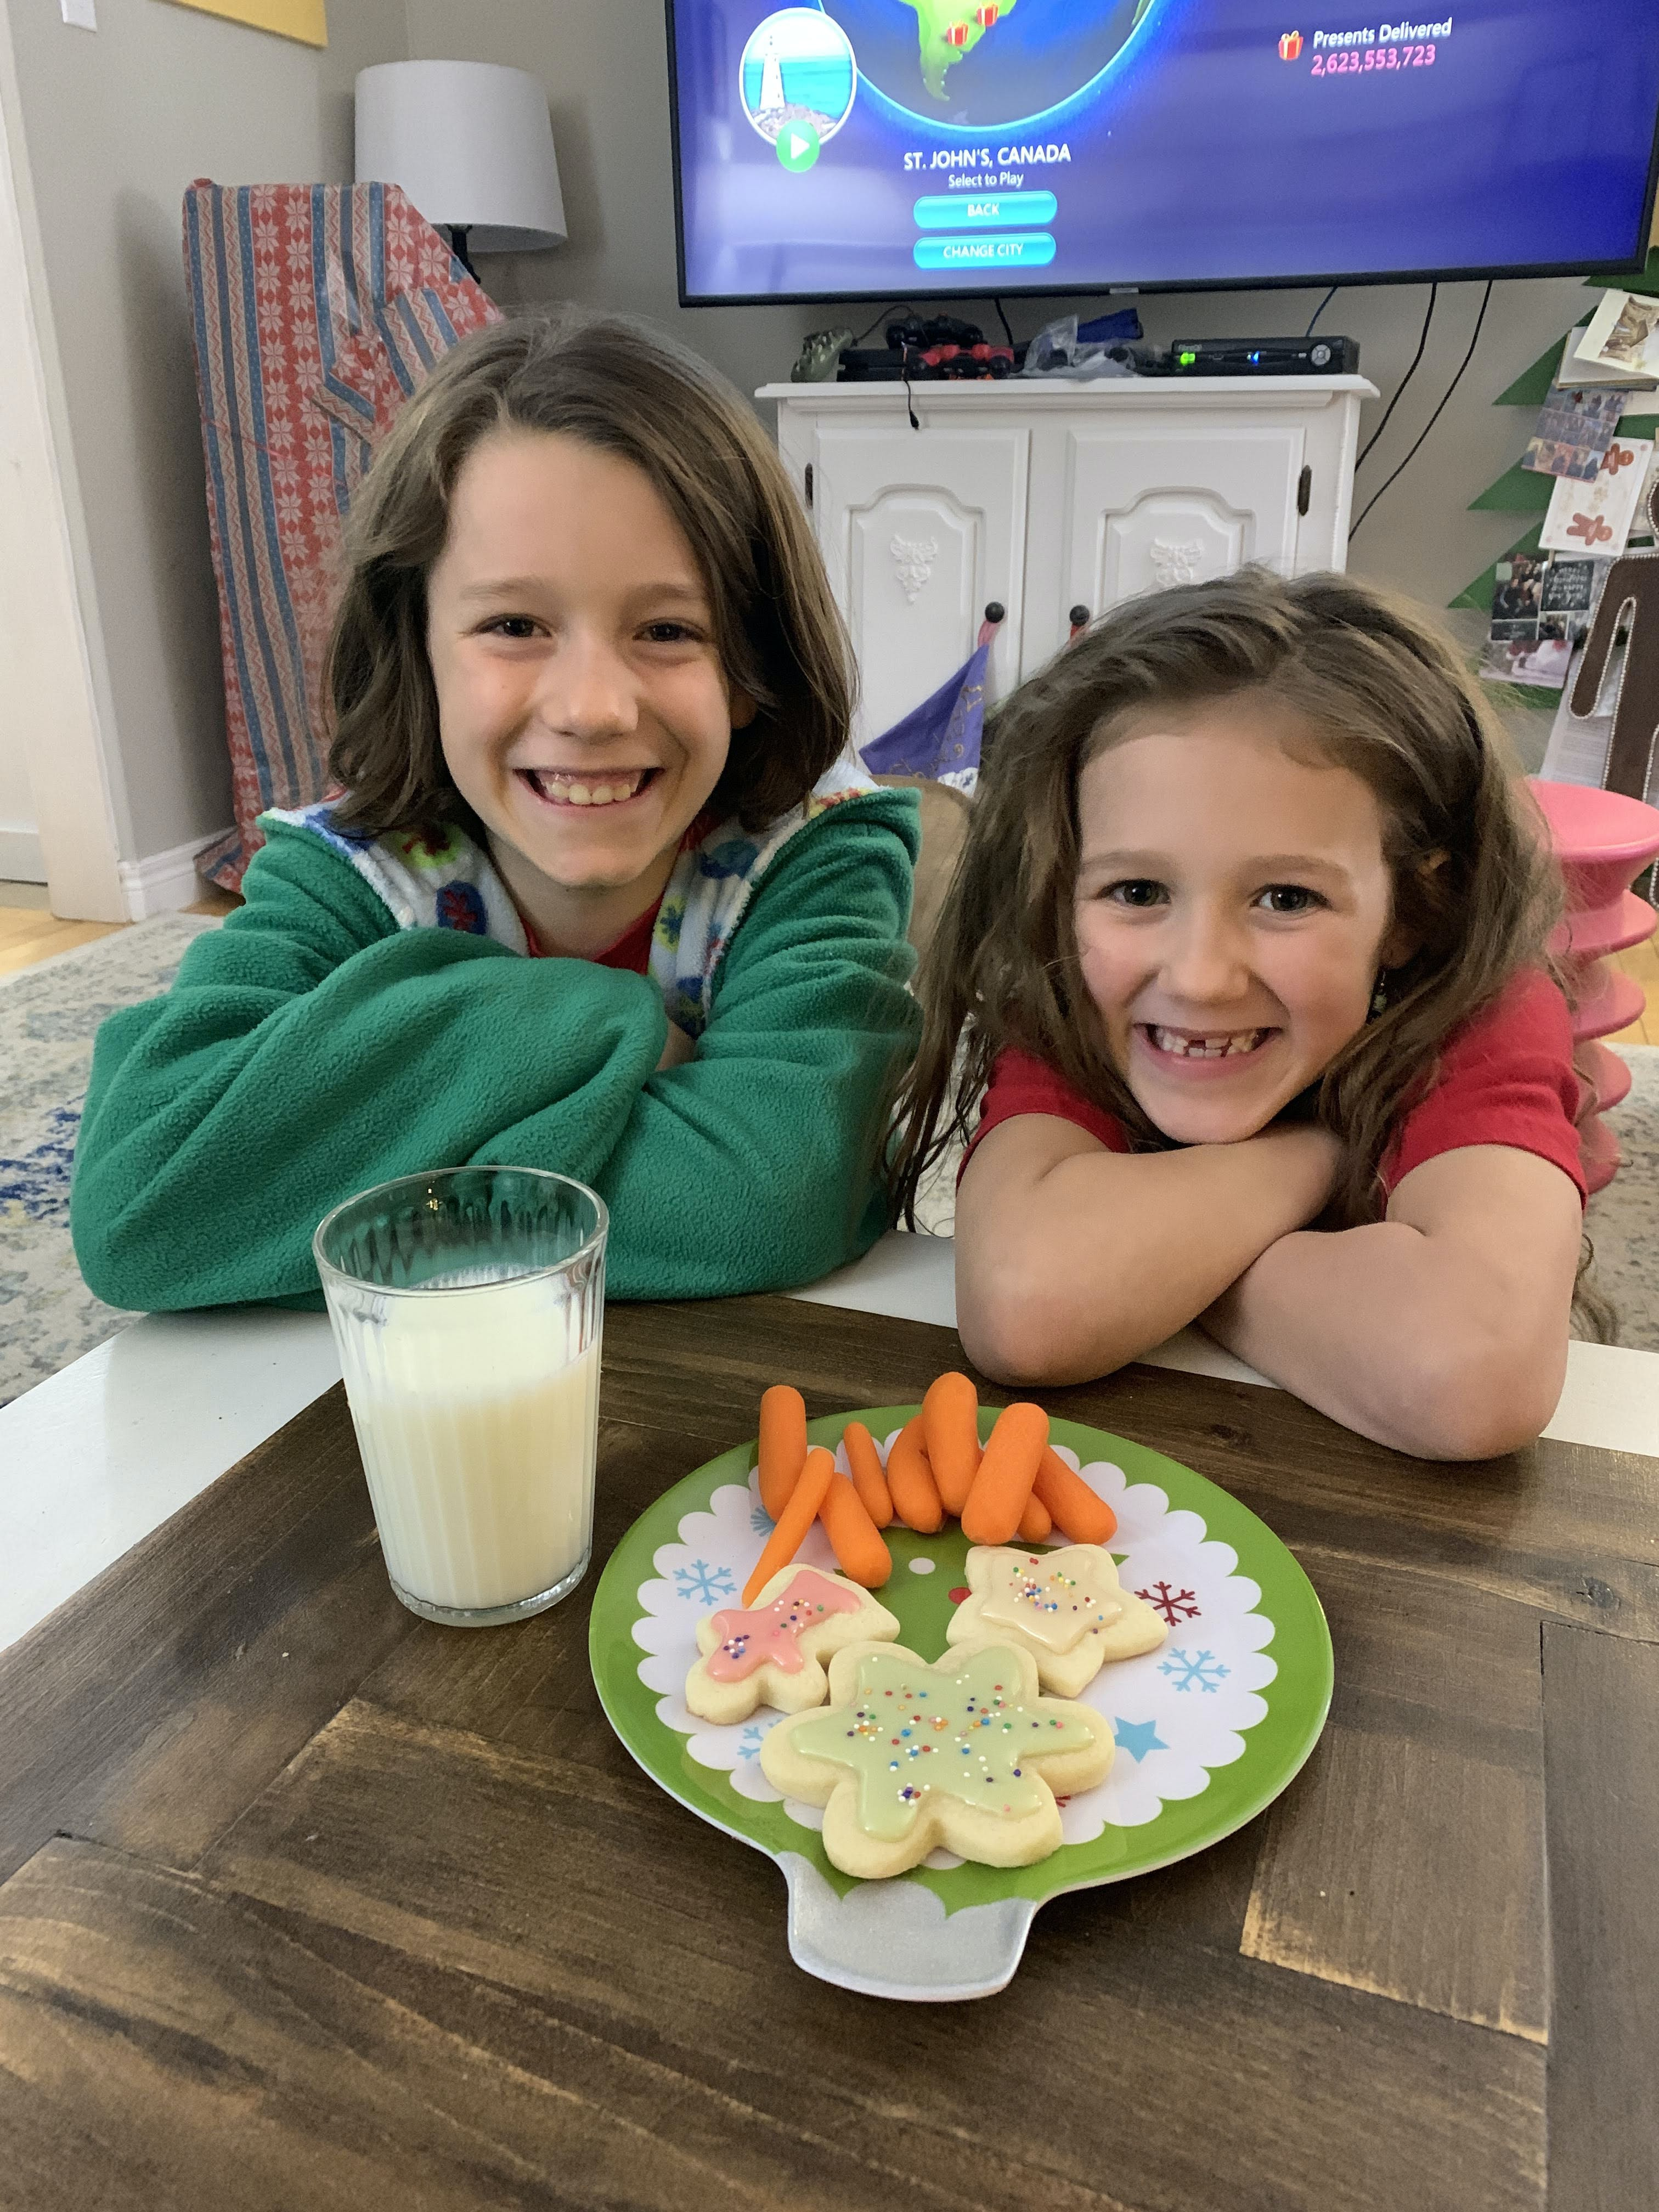 While Christmas won't be the same this year, there will still be pockets of joy. Above, Heather Laura Clarke's kids prepare to enjoy a holiday snack. Heather Laura Clarke Photo